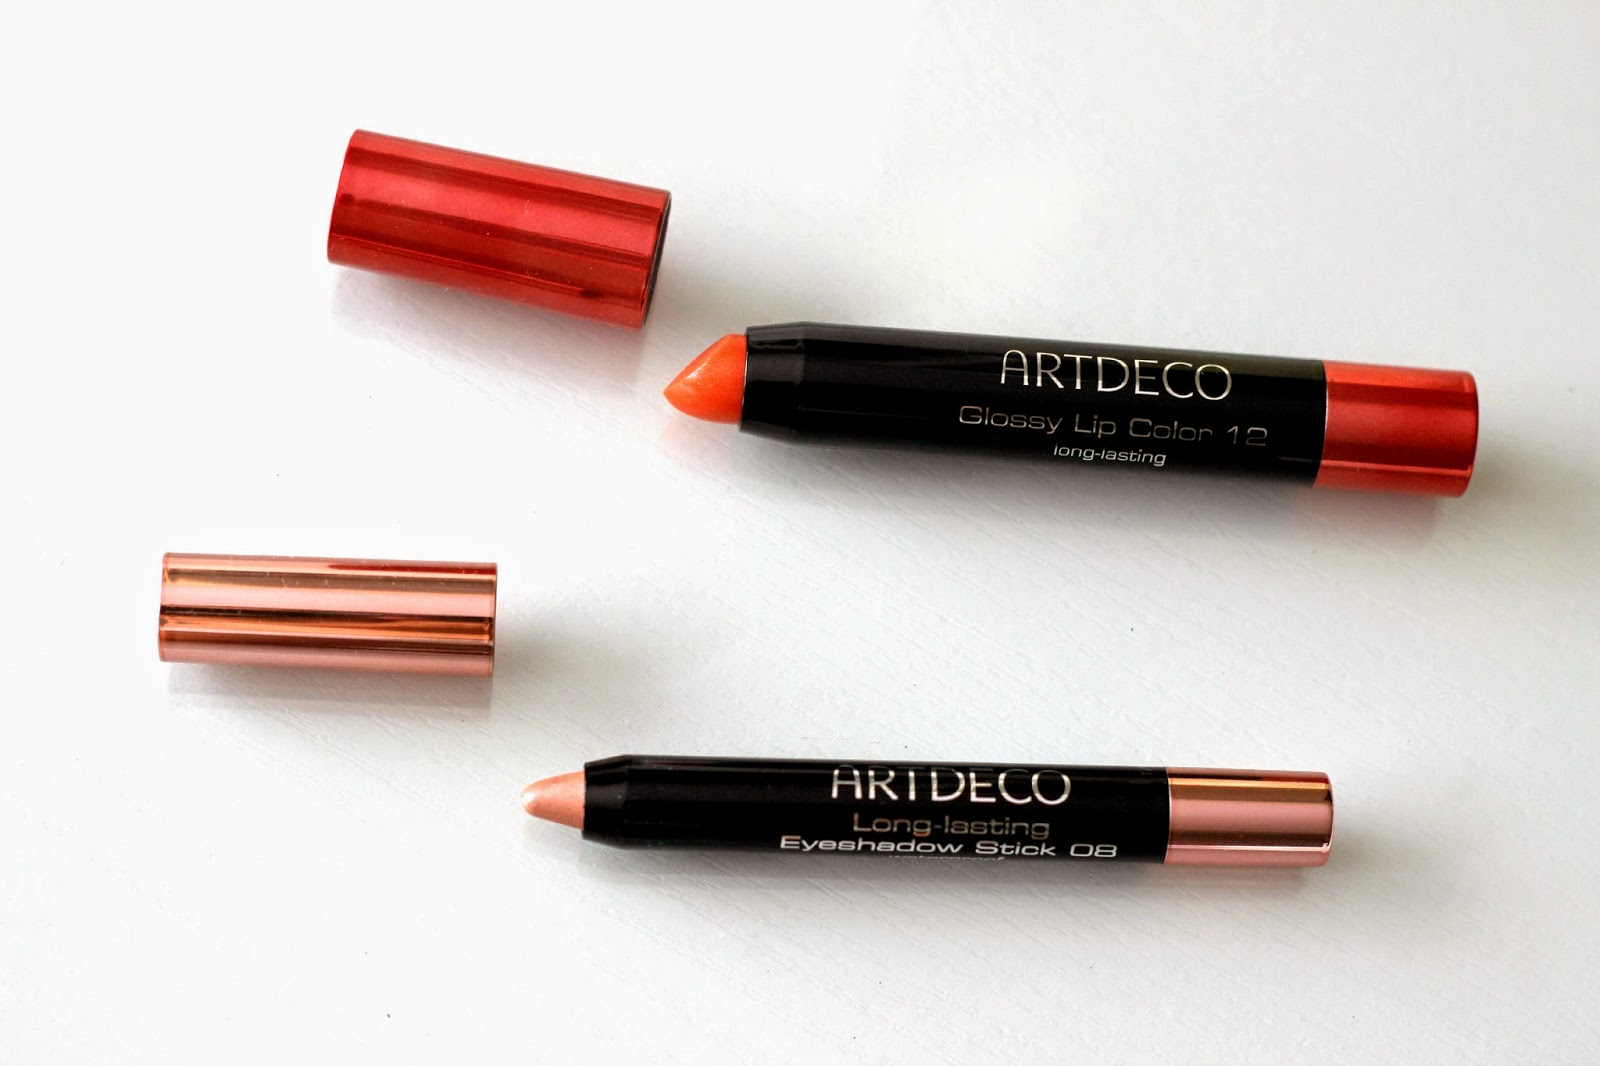 Artdeco Miami Summer 2014 Makeup Collection